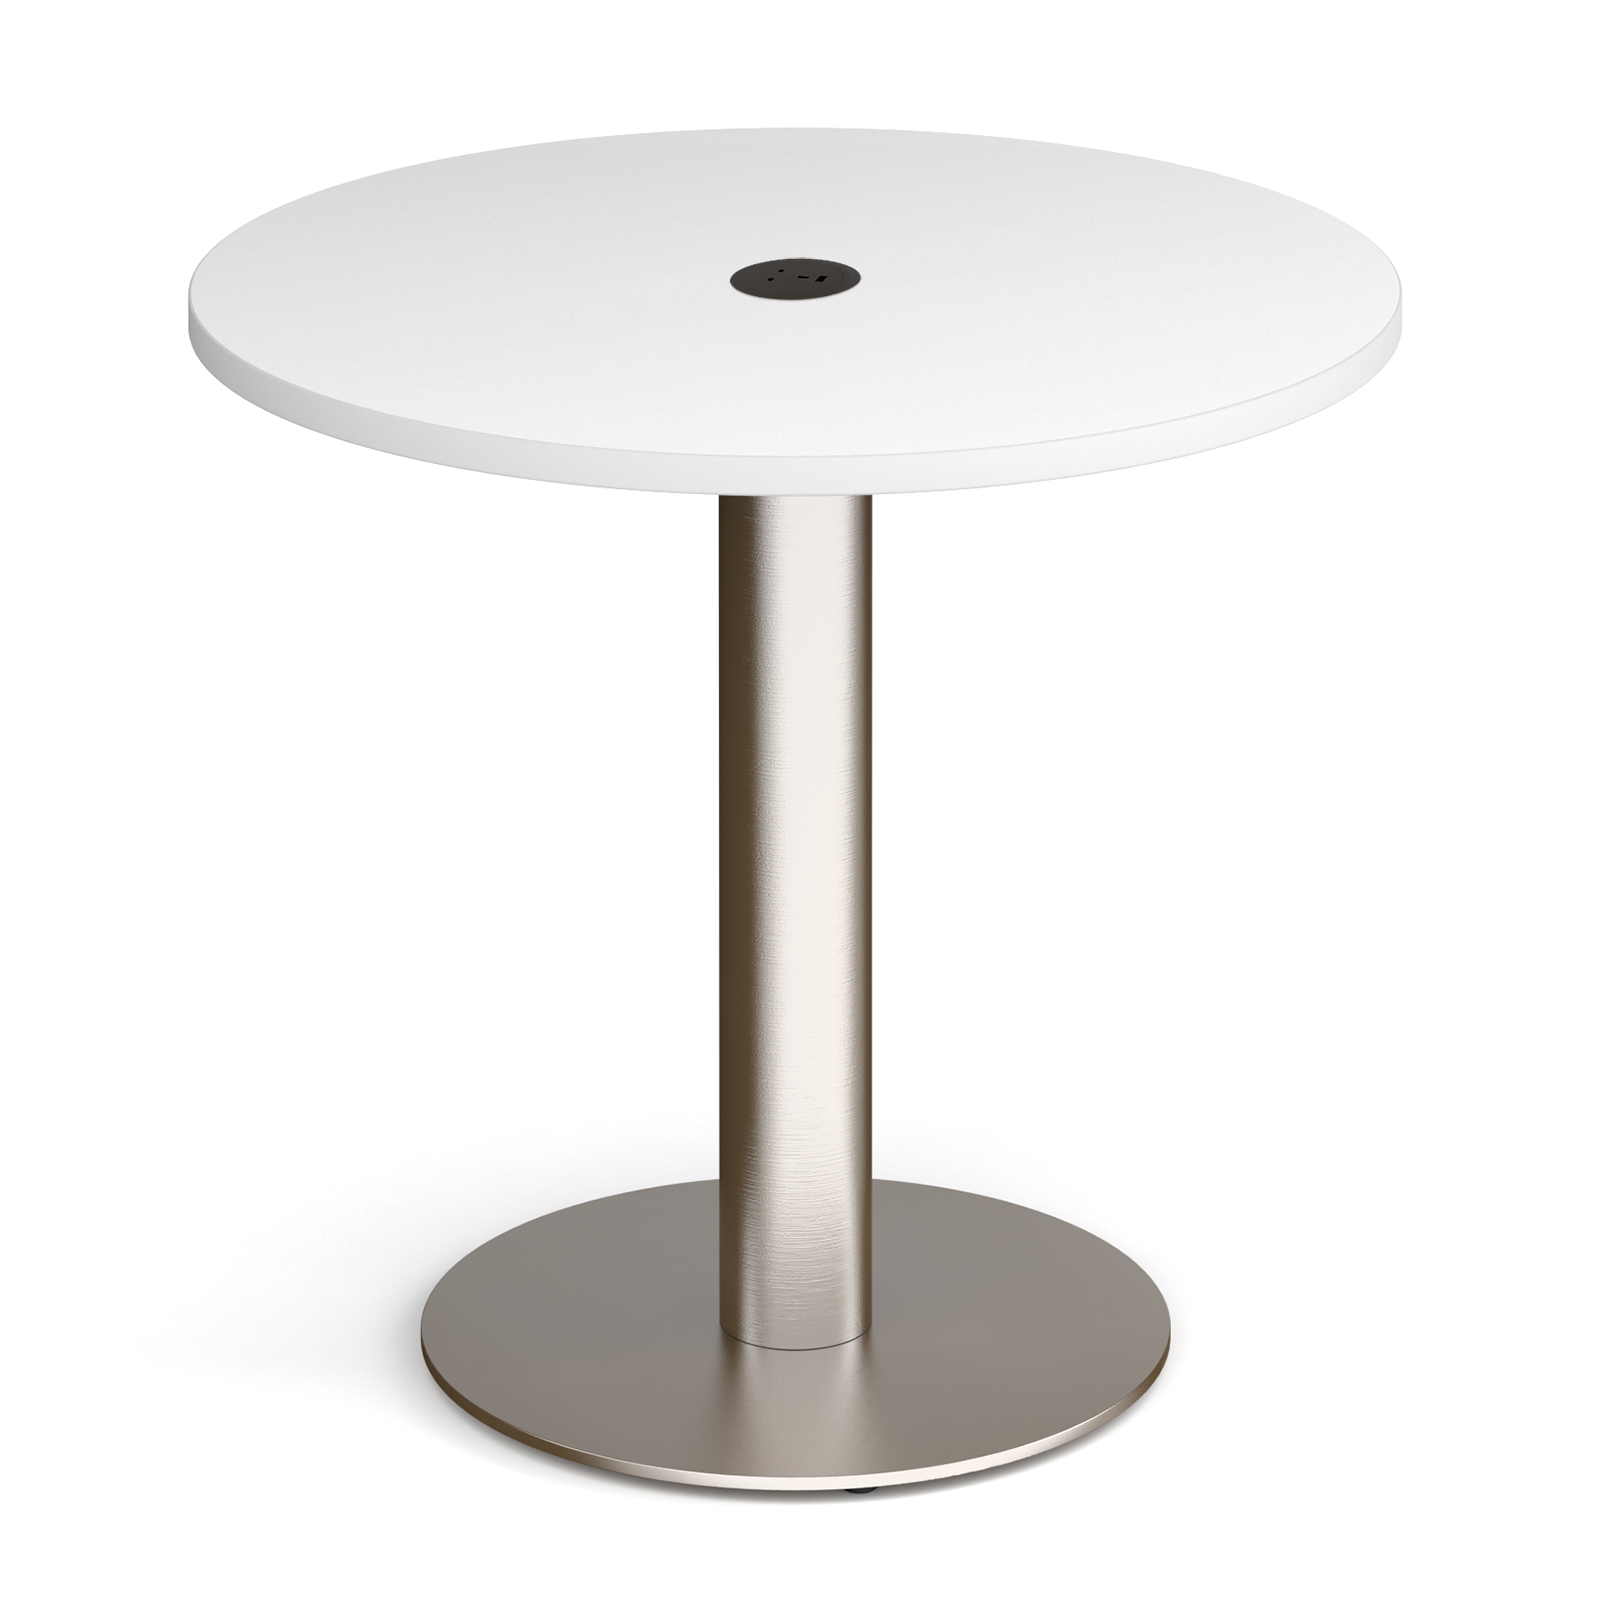 Boardroom / Meeting Monza circular dining table 800mm in white with central circular cutout and Ion power module in black